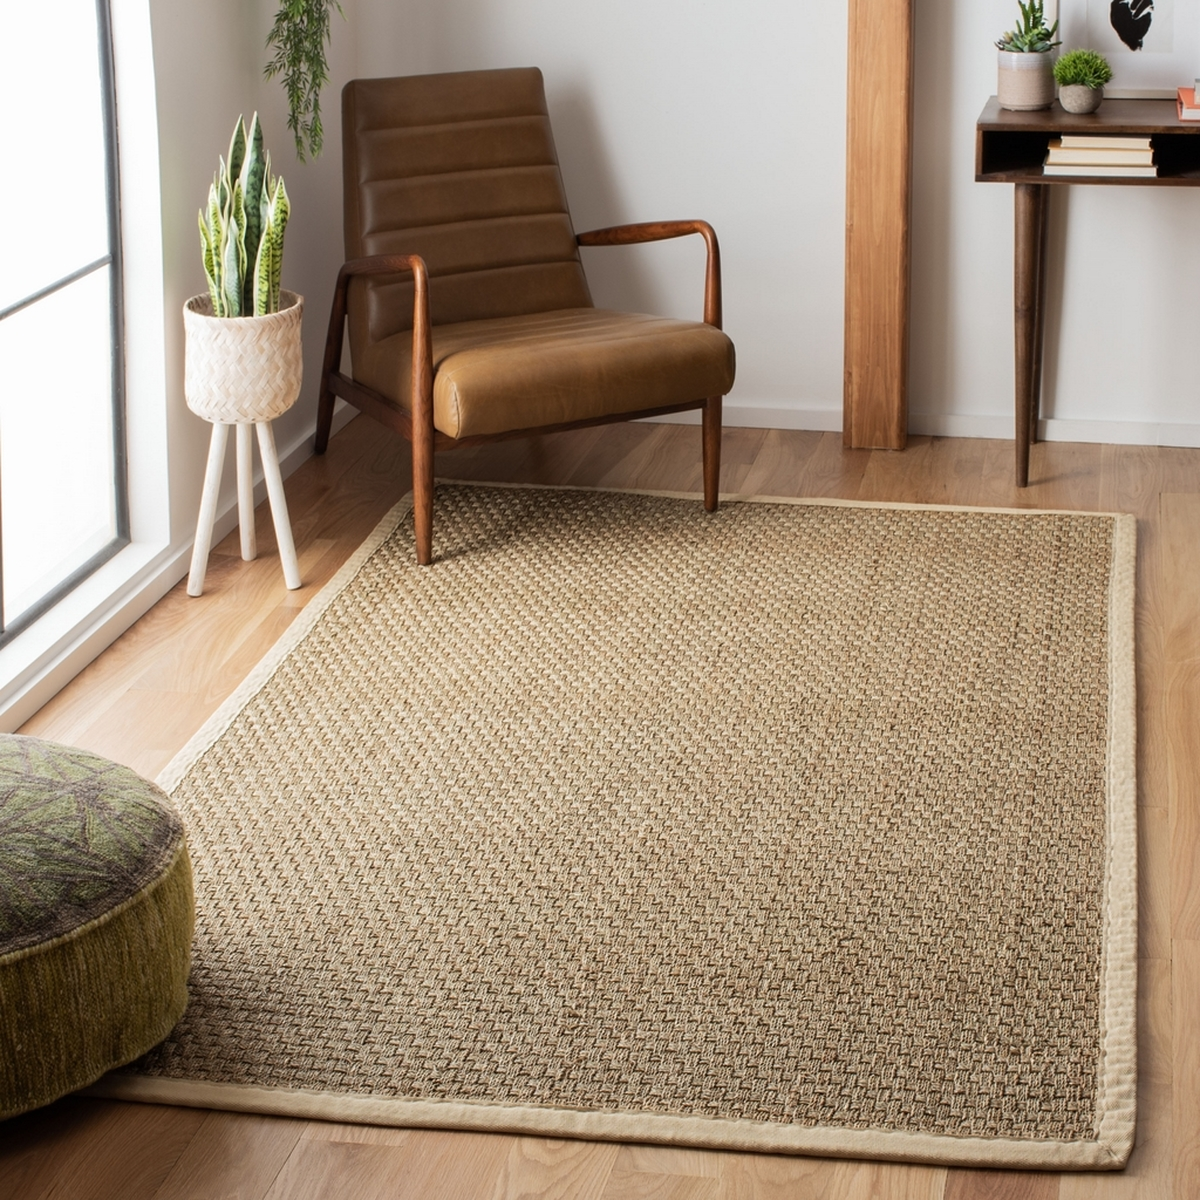 Rug Nf114j Natural Fiber Area Rugs By Safavieh